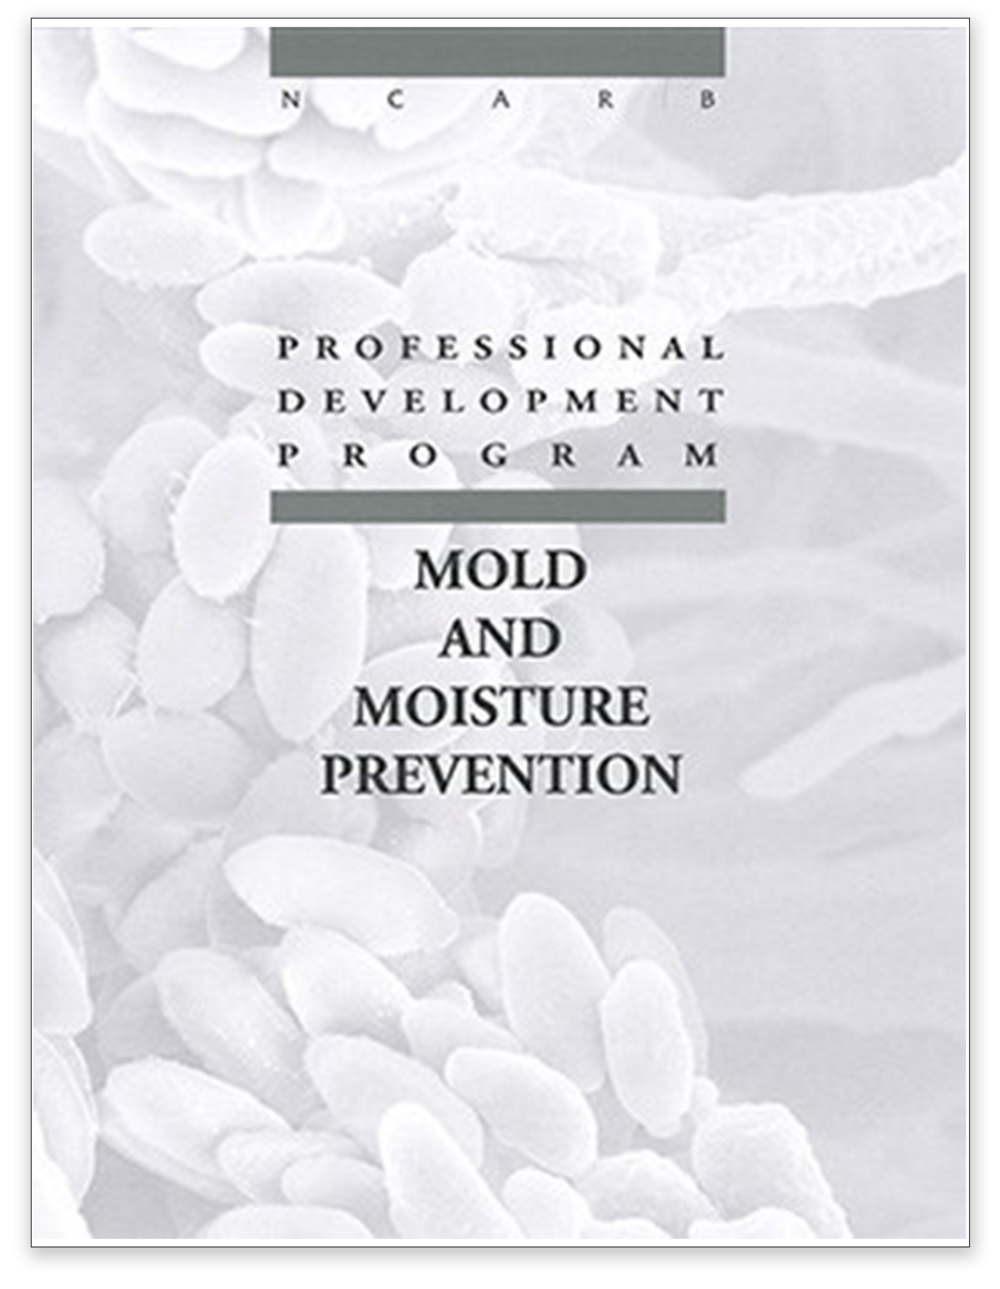 Publication - Mold and Moisture Prevention